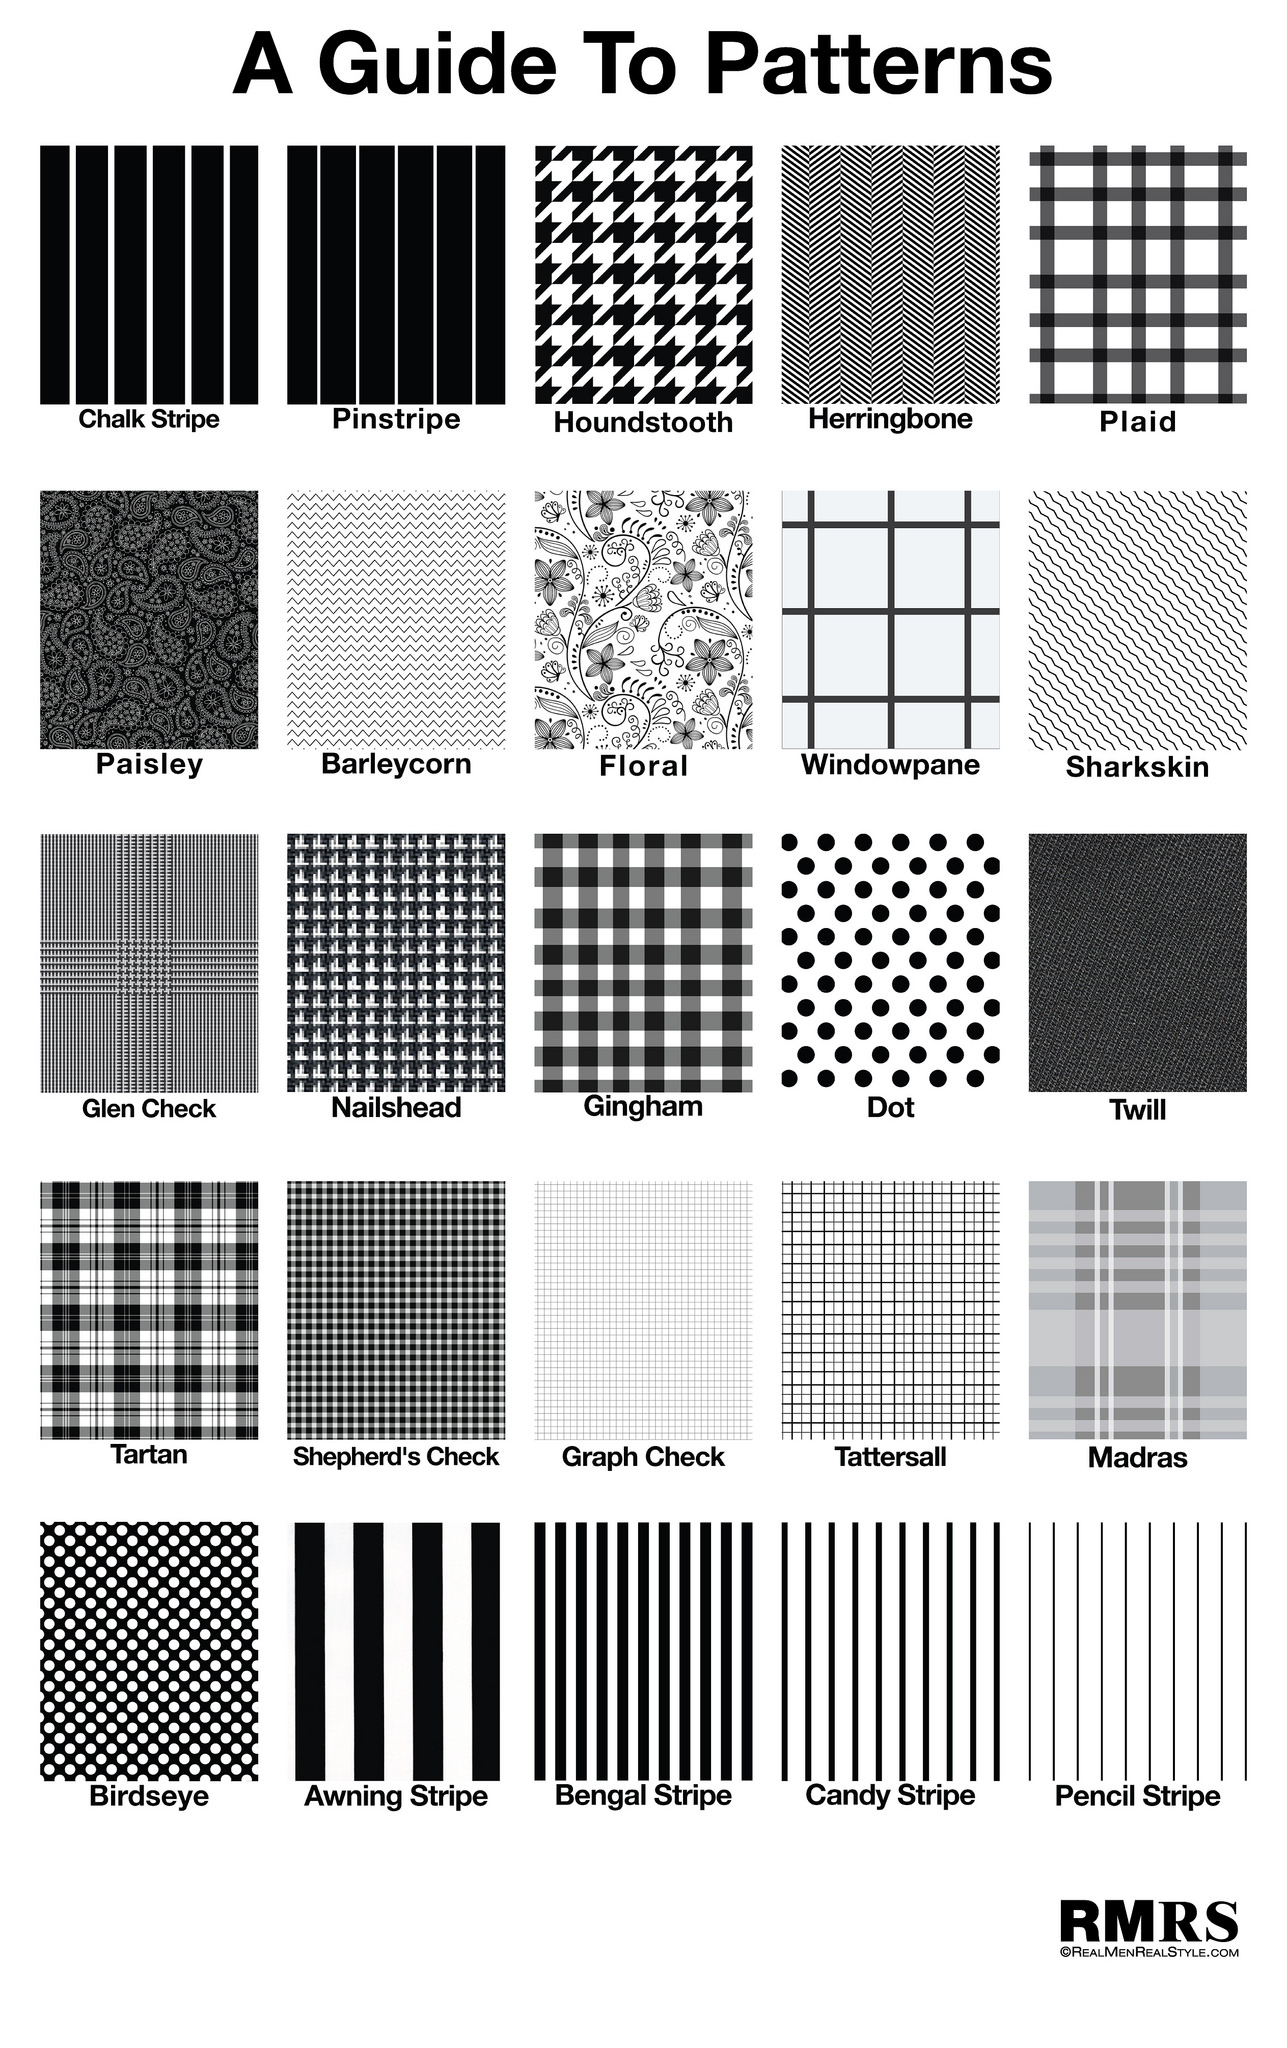 A Guide To Patterns